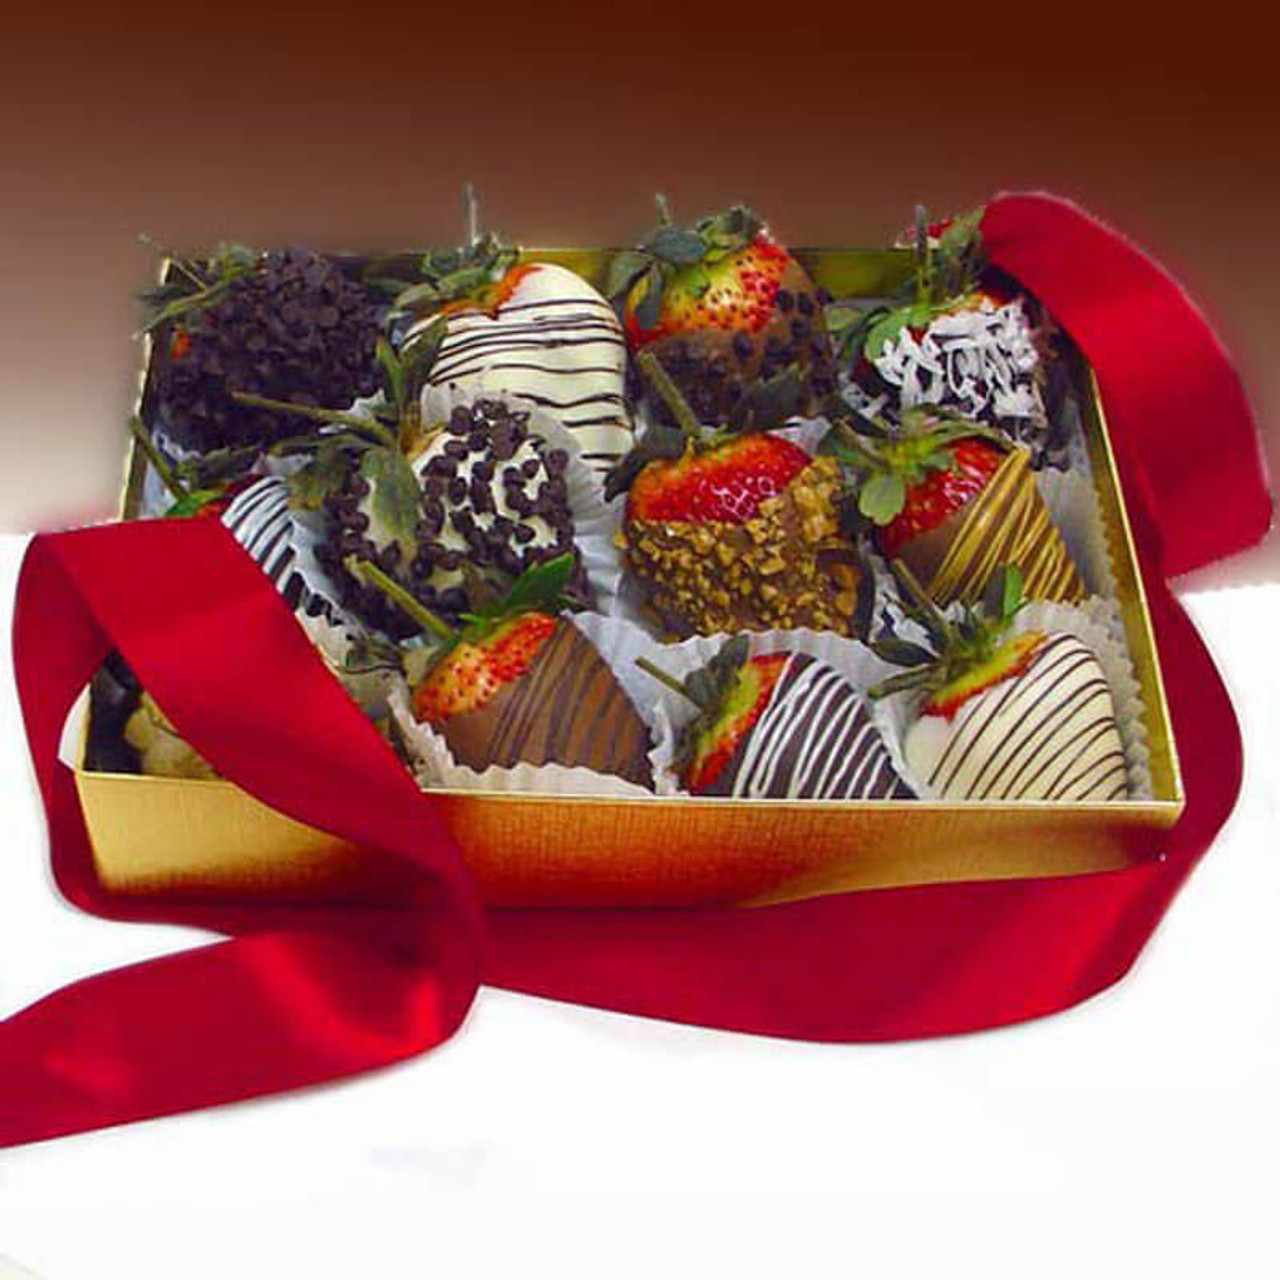 Decadent Chocolate Strawberries Gift Box Buy Now 54 95